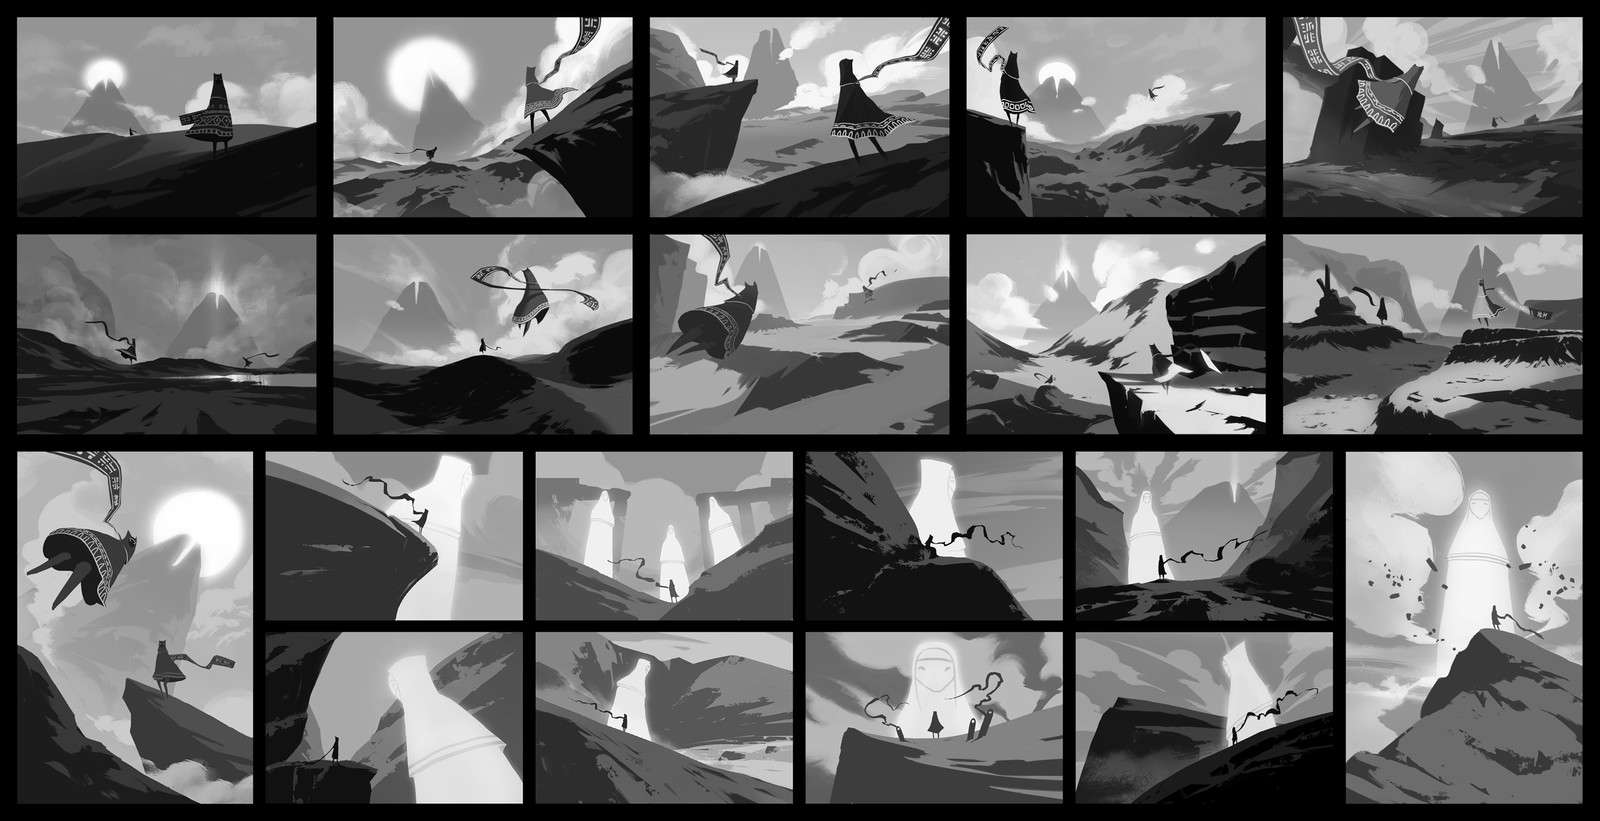 Collection of all composition sketches i did. They chose first two sketches from the second row, so I did combination of those two